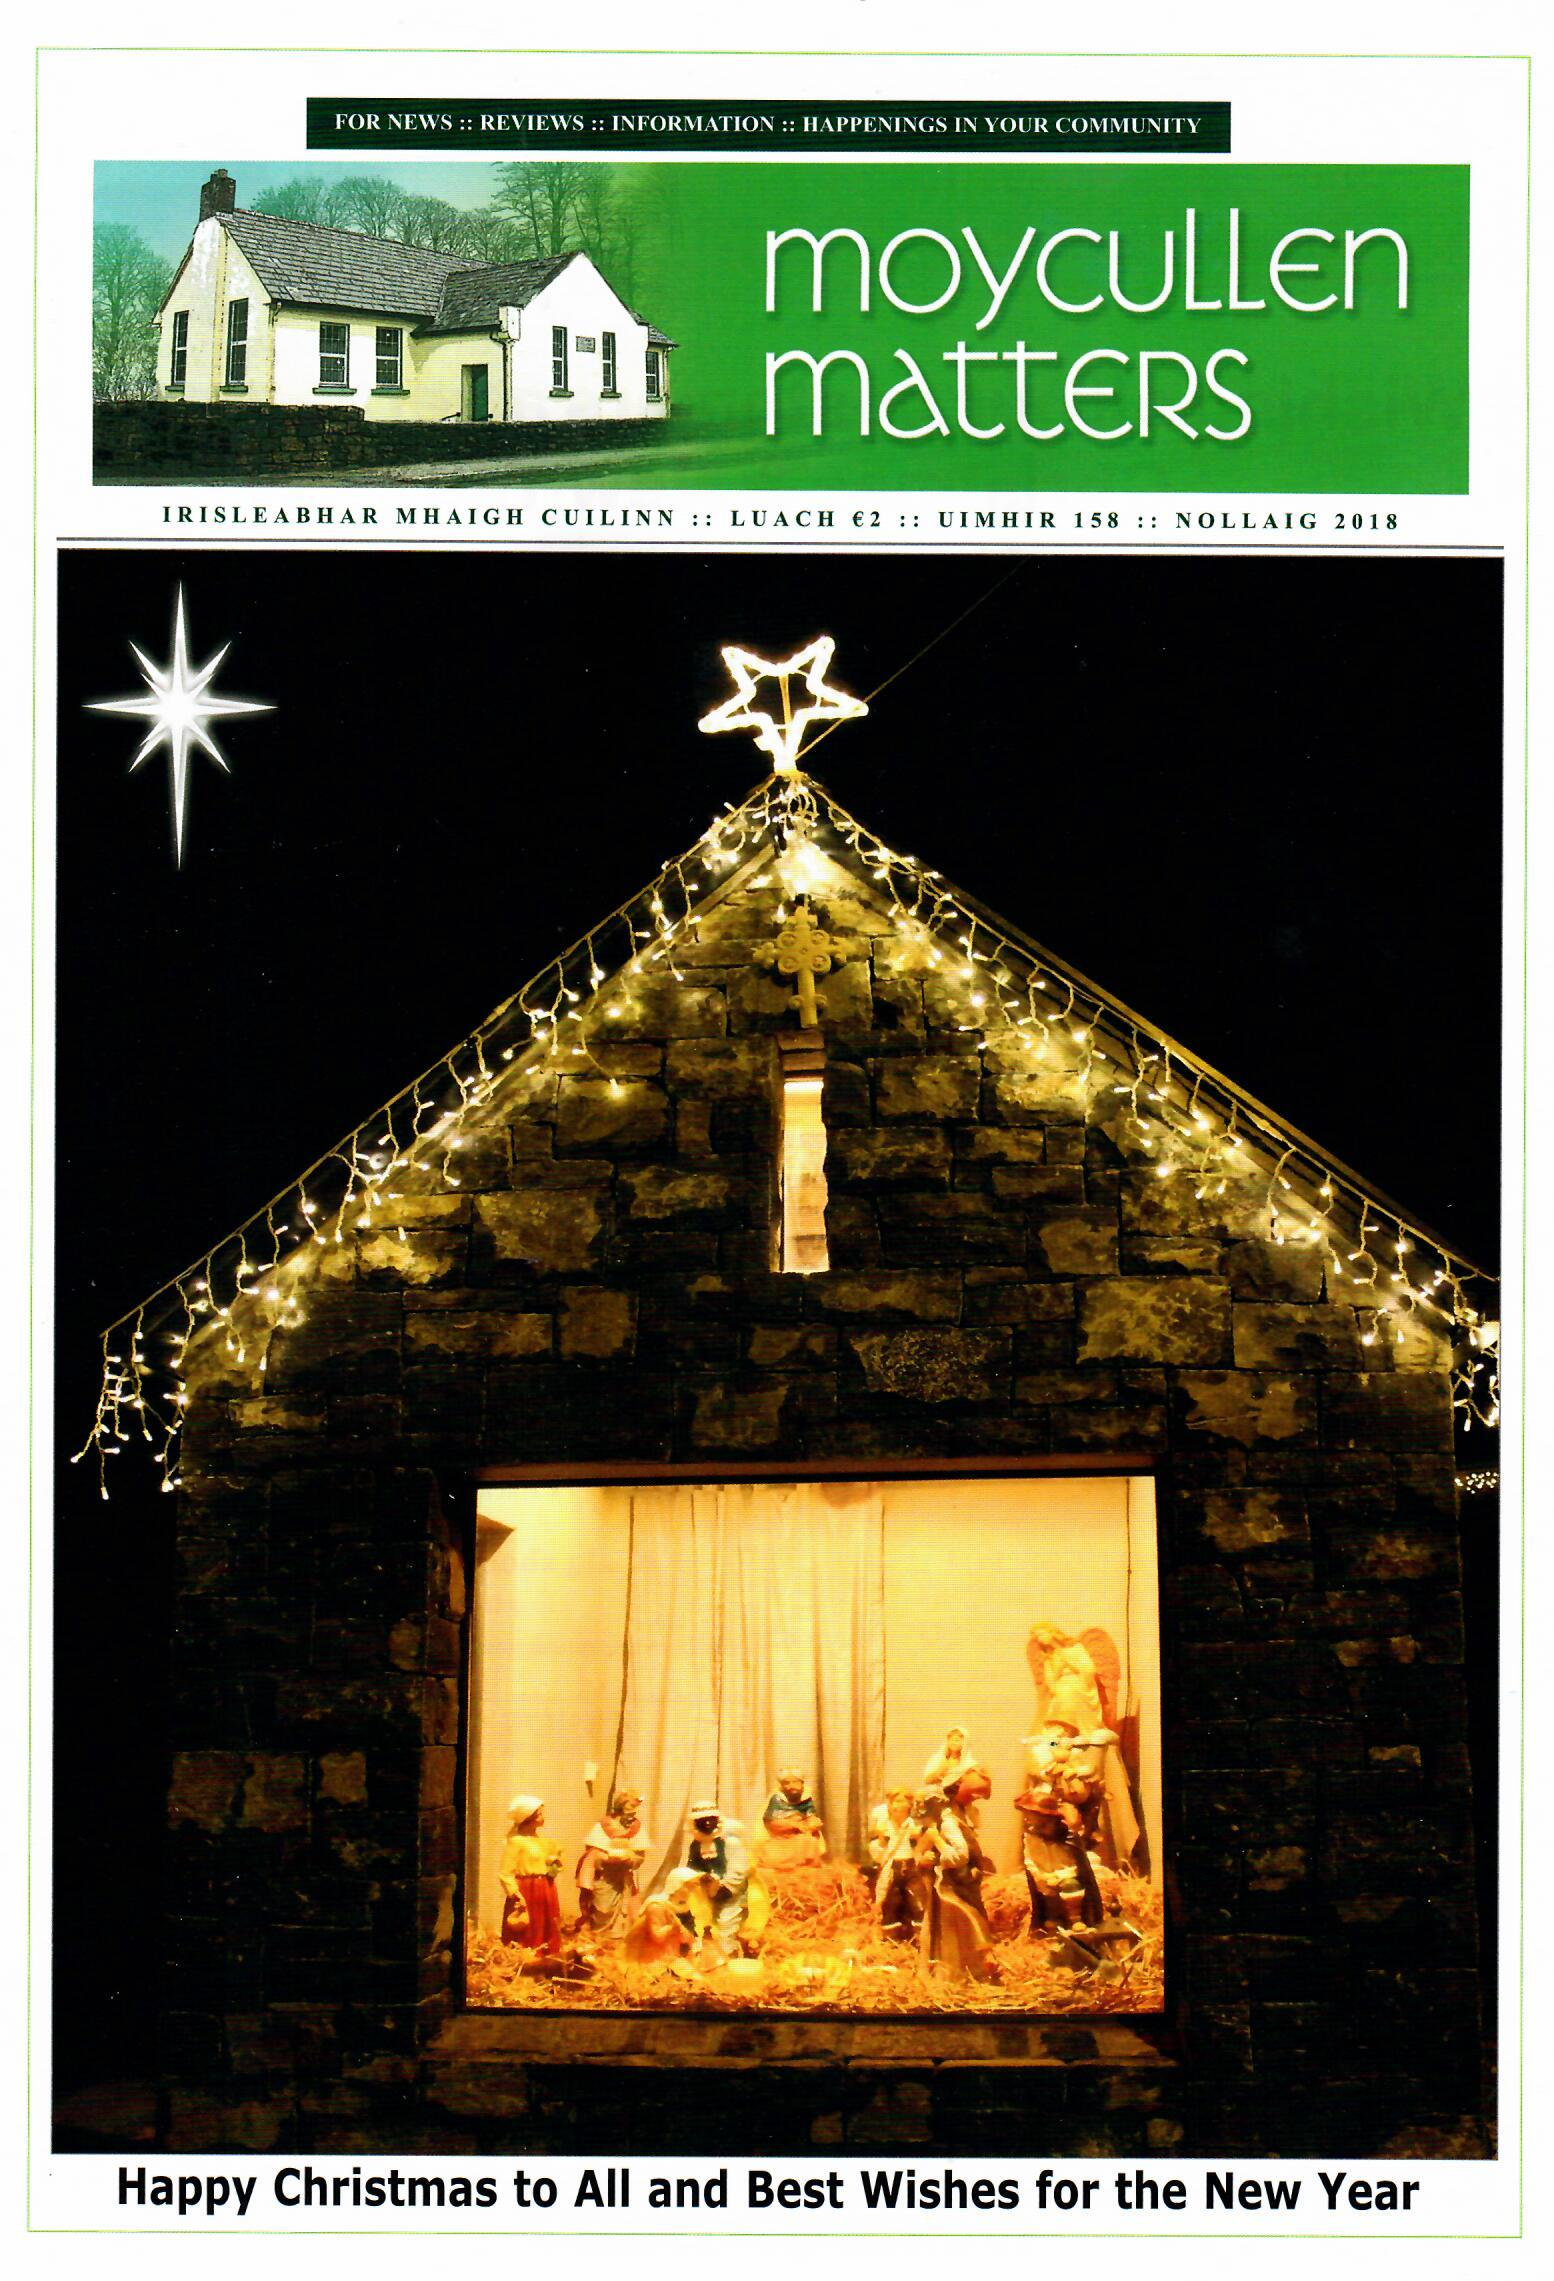 The Christmas edition of Moycullen Matters is now available from the Community Office and at the usual outlets price €2